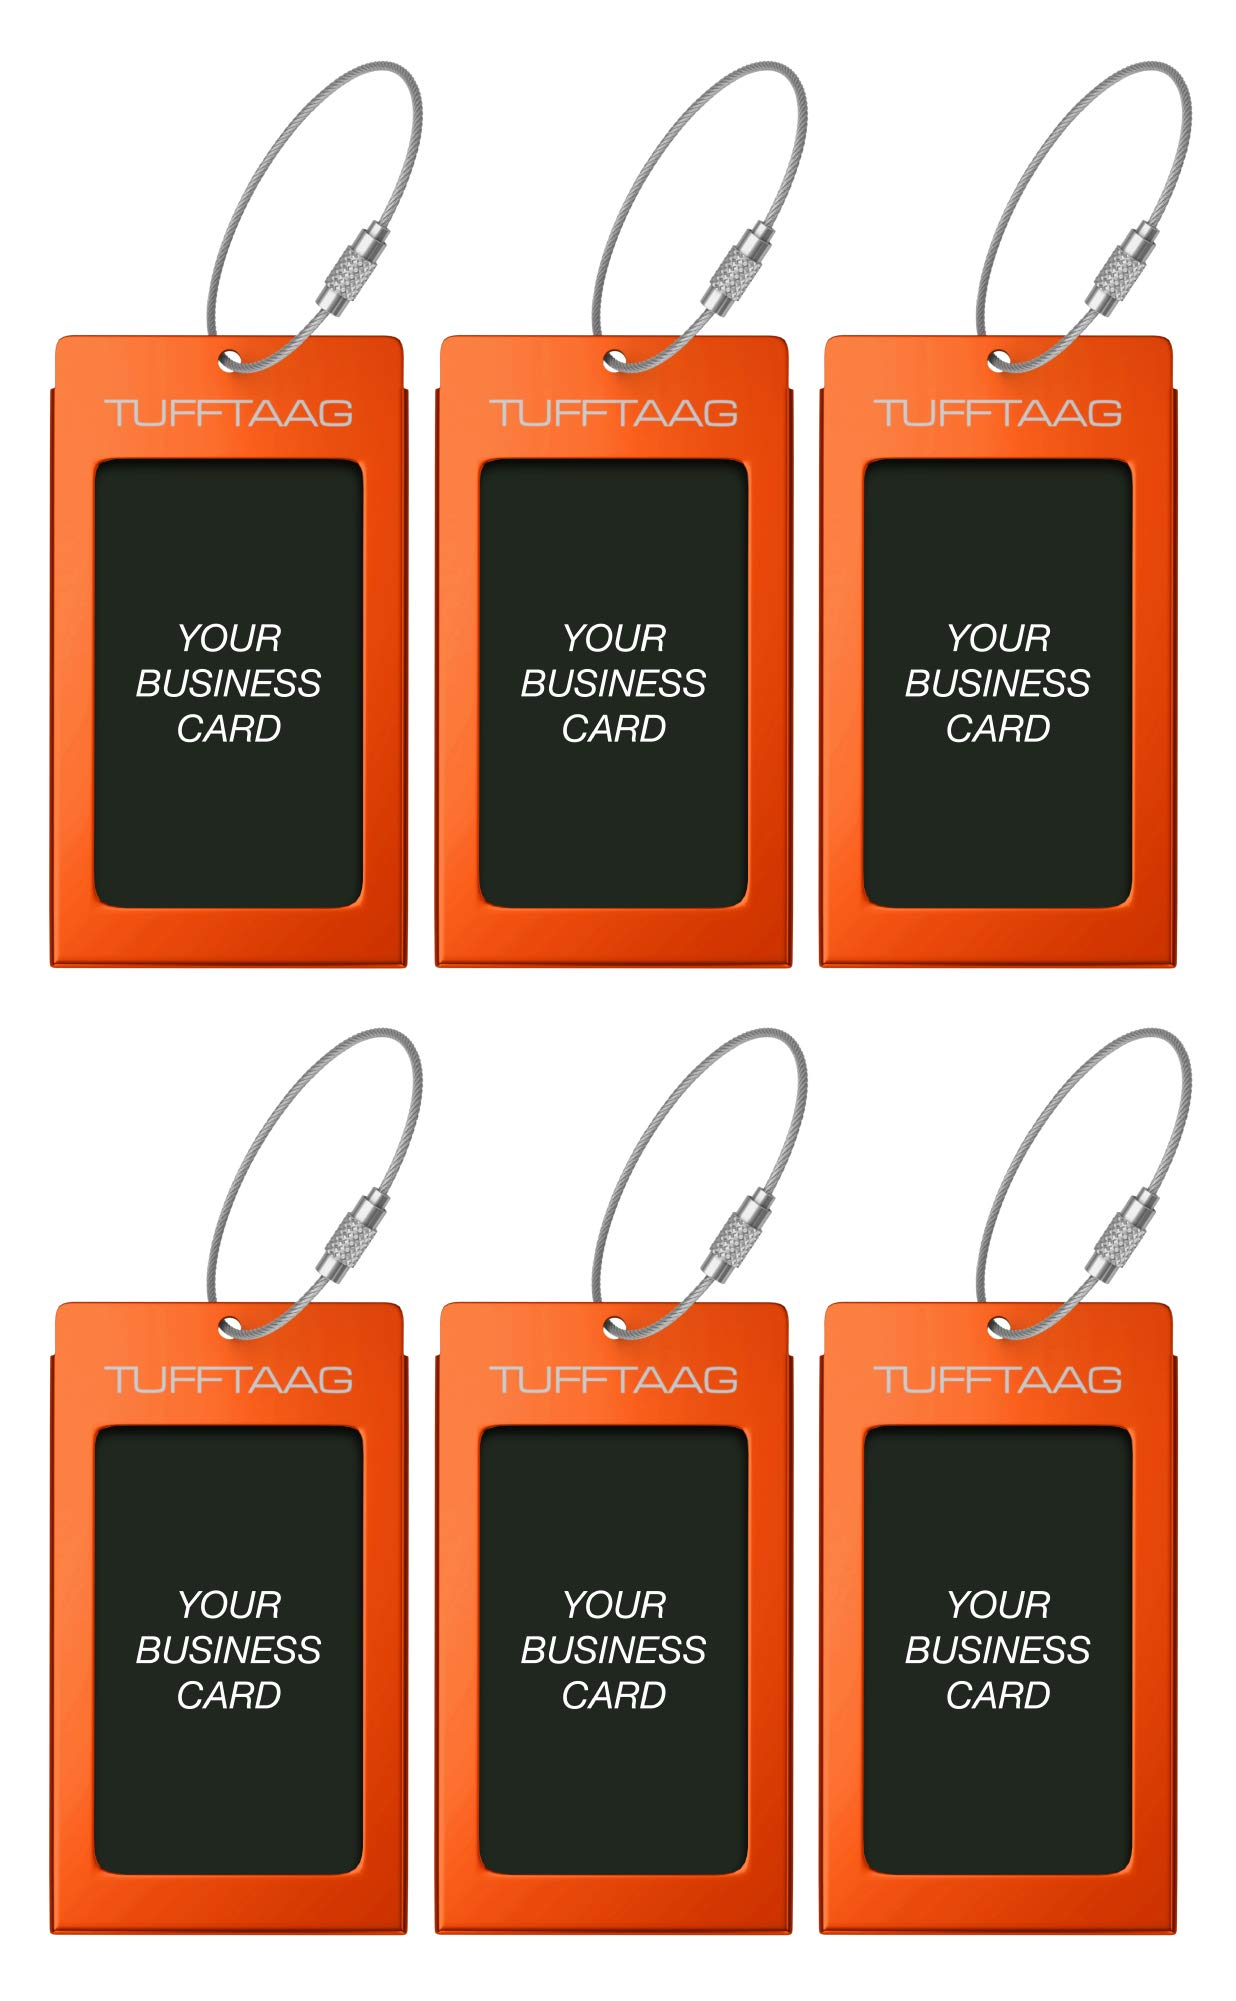 Luggage Tags TUFFTAAG for Business Cards, Metal Suitcase Labels, 6 Pack Bundle (6 Orange)